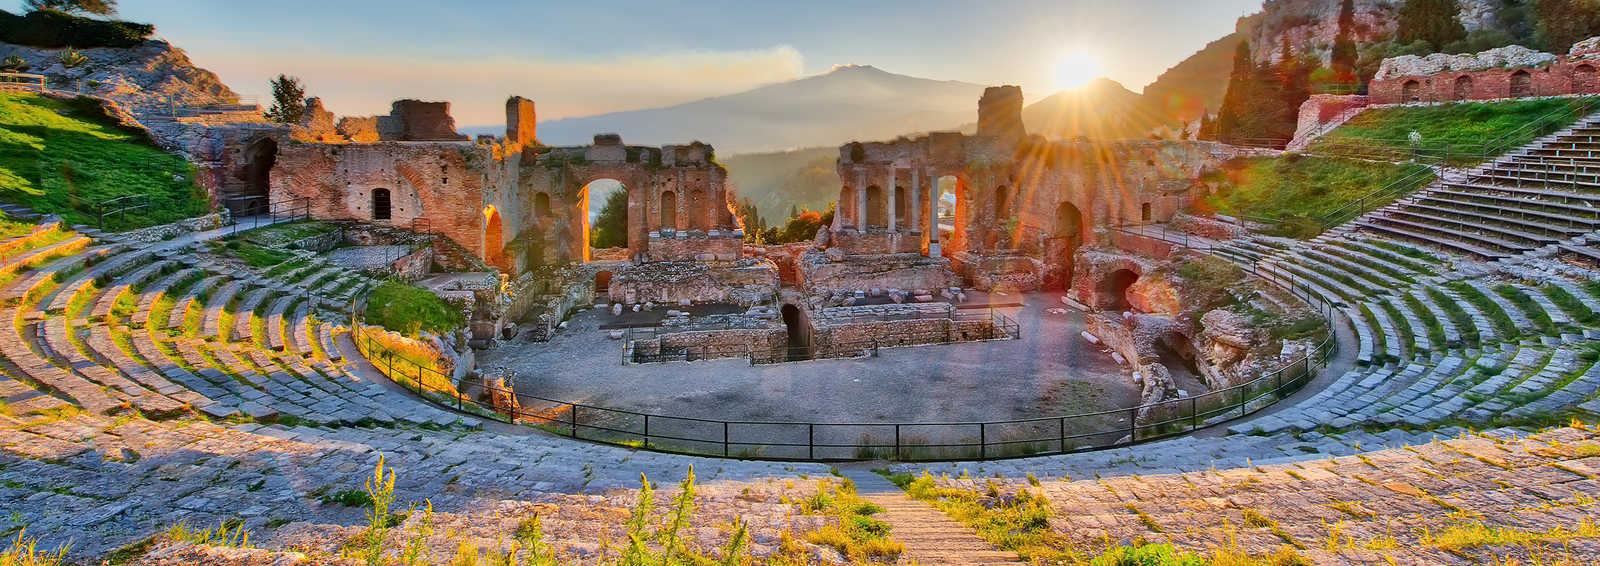 Ancient theatre of Taormina, Siciliy, Italy with Etna erupting volcano at sunset